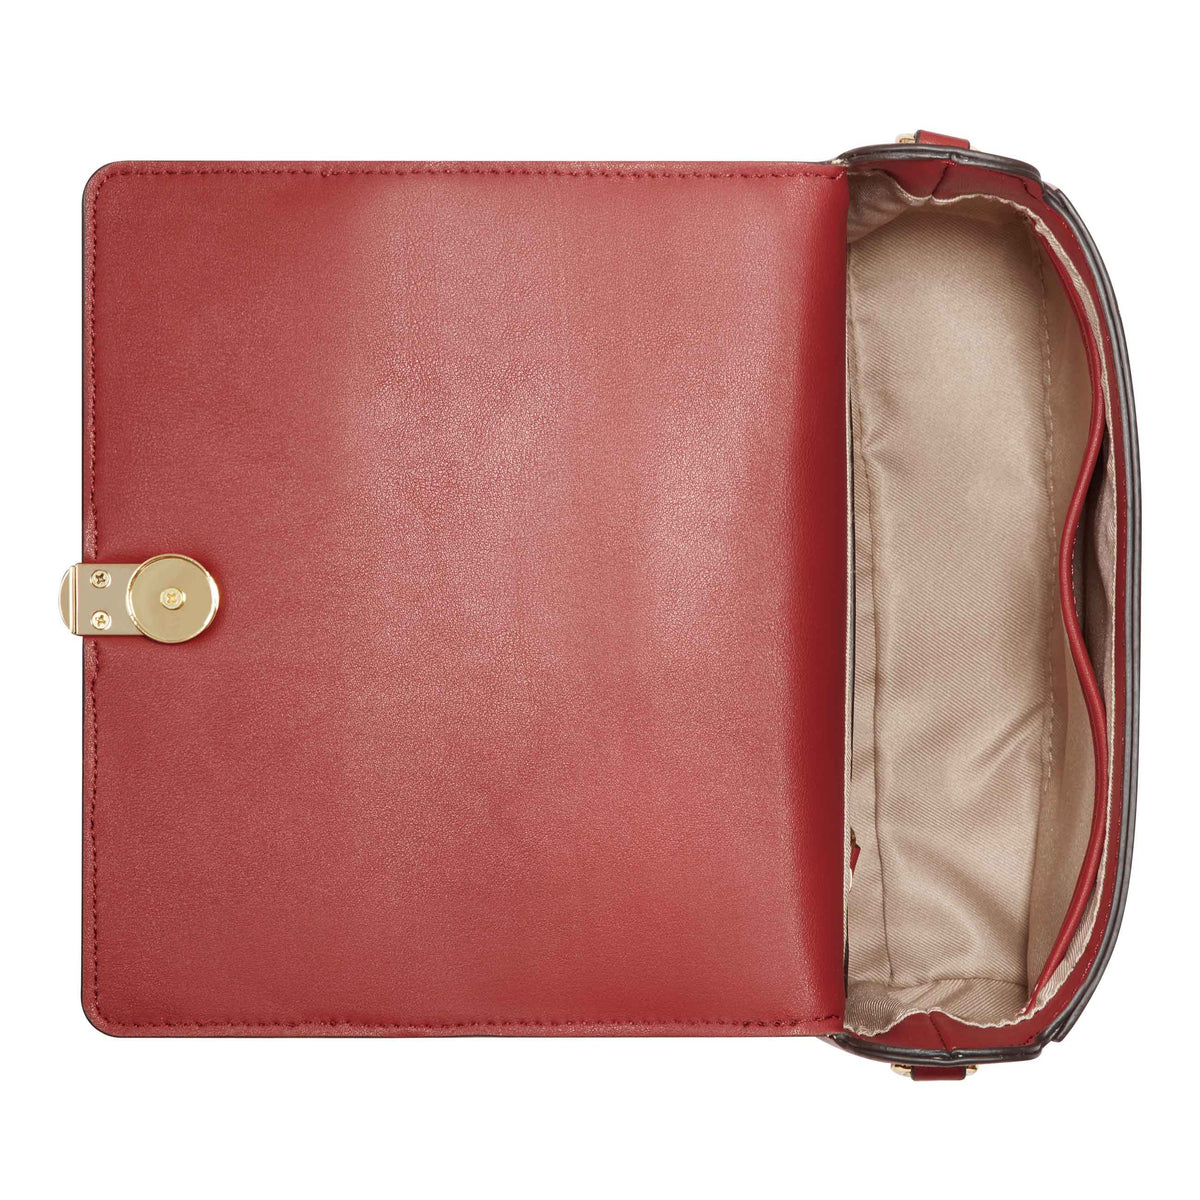 kinsley-mini-top-handle-in-rhubarb